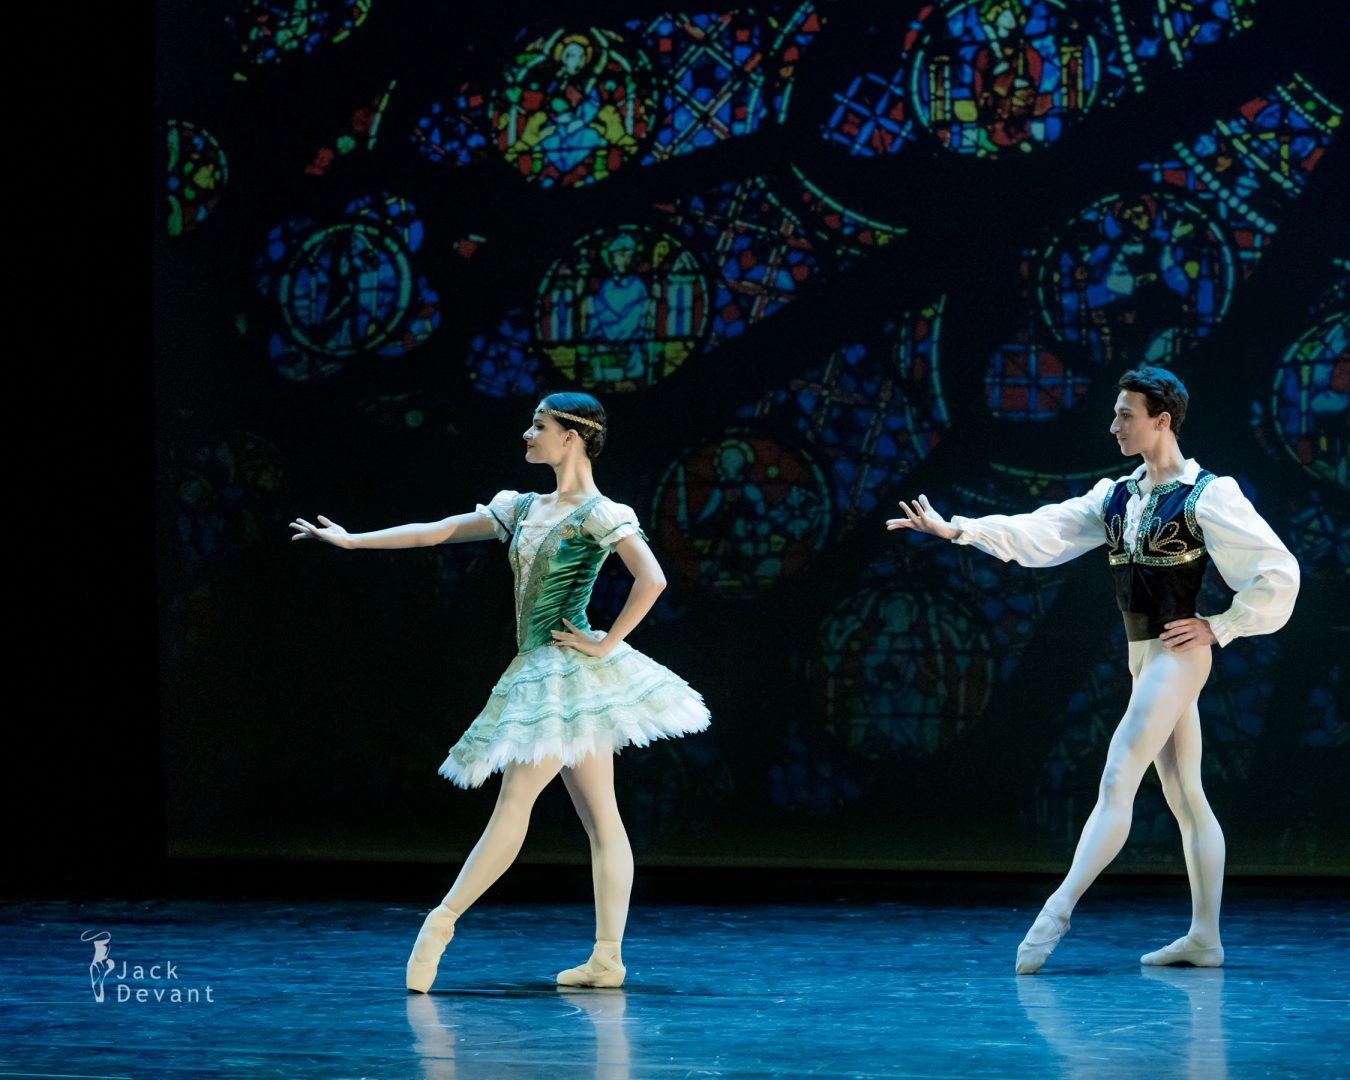 Rosa Pierro and Rinaldo Venuti in Esmeralda pdd